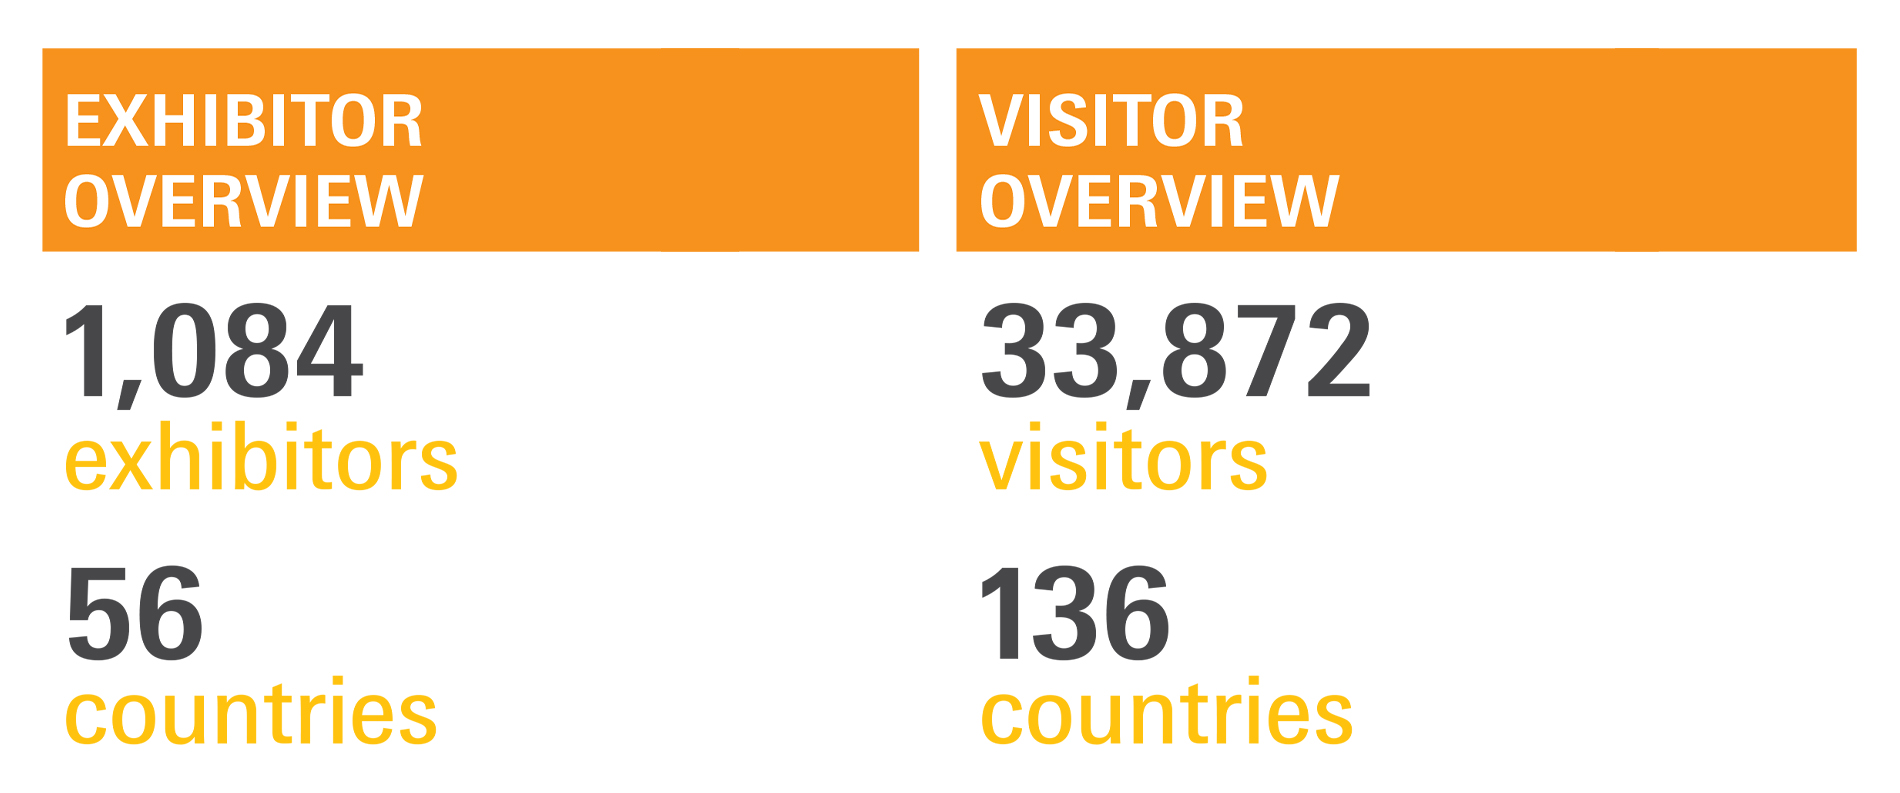 exhibitor & visitor numbers